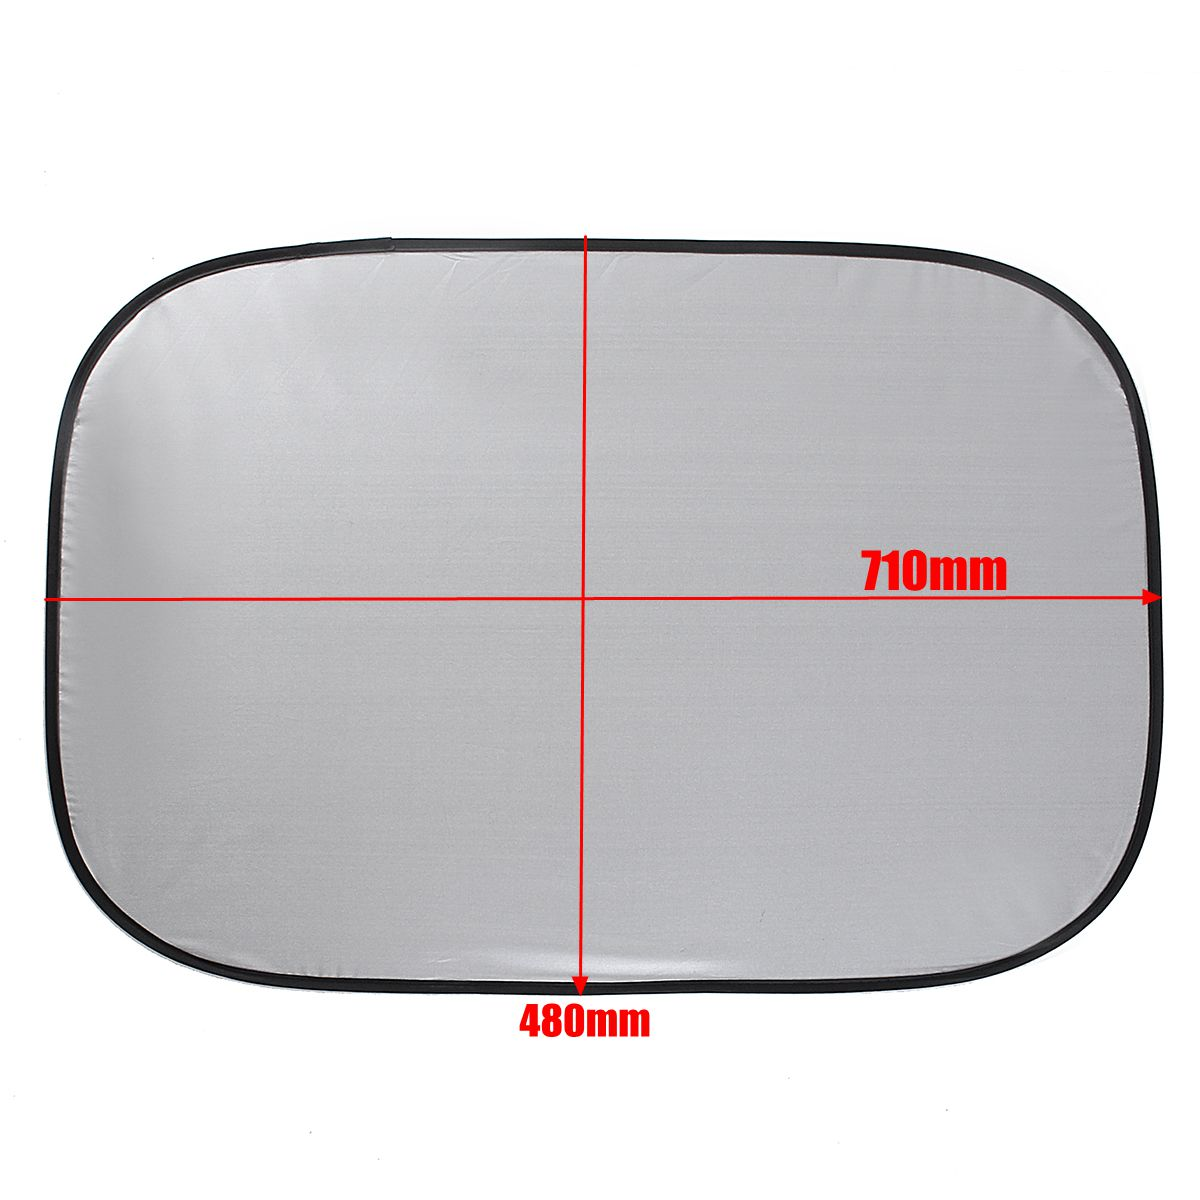 New Heat Isolate Foldable Sunroof For MINI Cooper 2007 2008 2009 2010-2017 Window Sunshade Decoration Shade Sunshade Heat Isolat